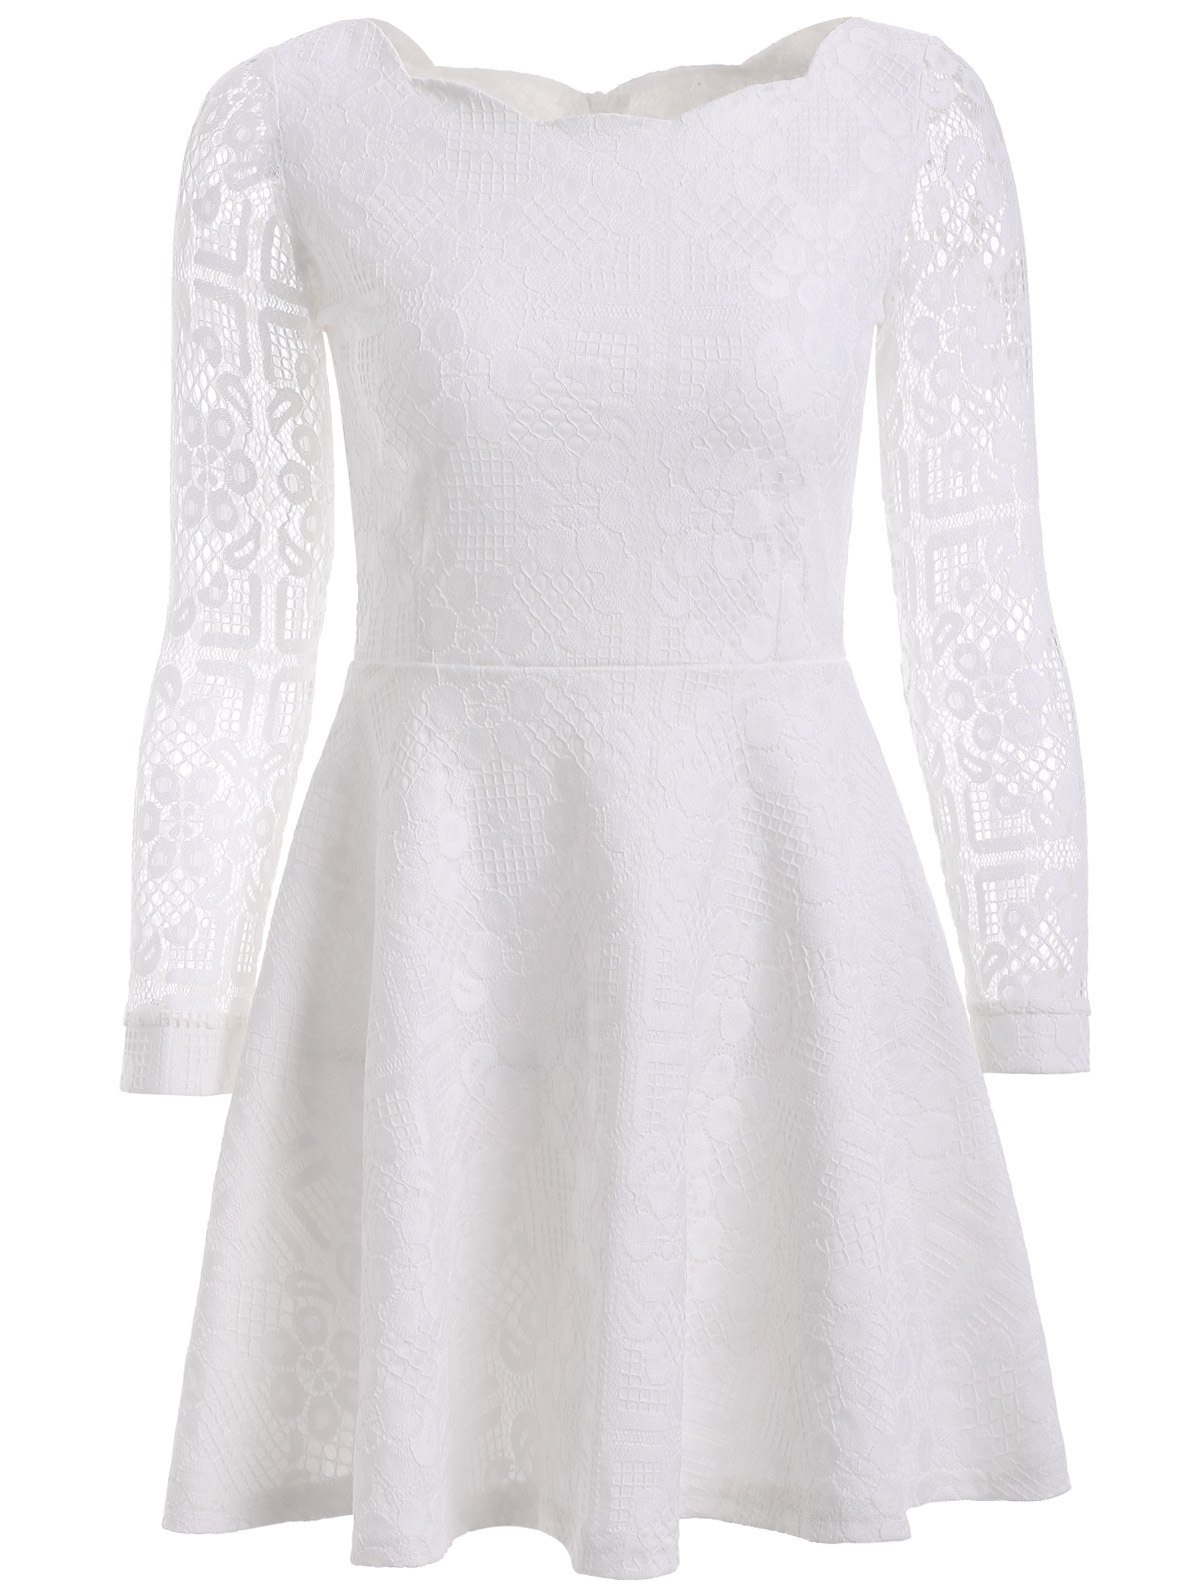 Sweet Women's Floral Embroidered Lace Dress - WHITE 3XL